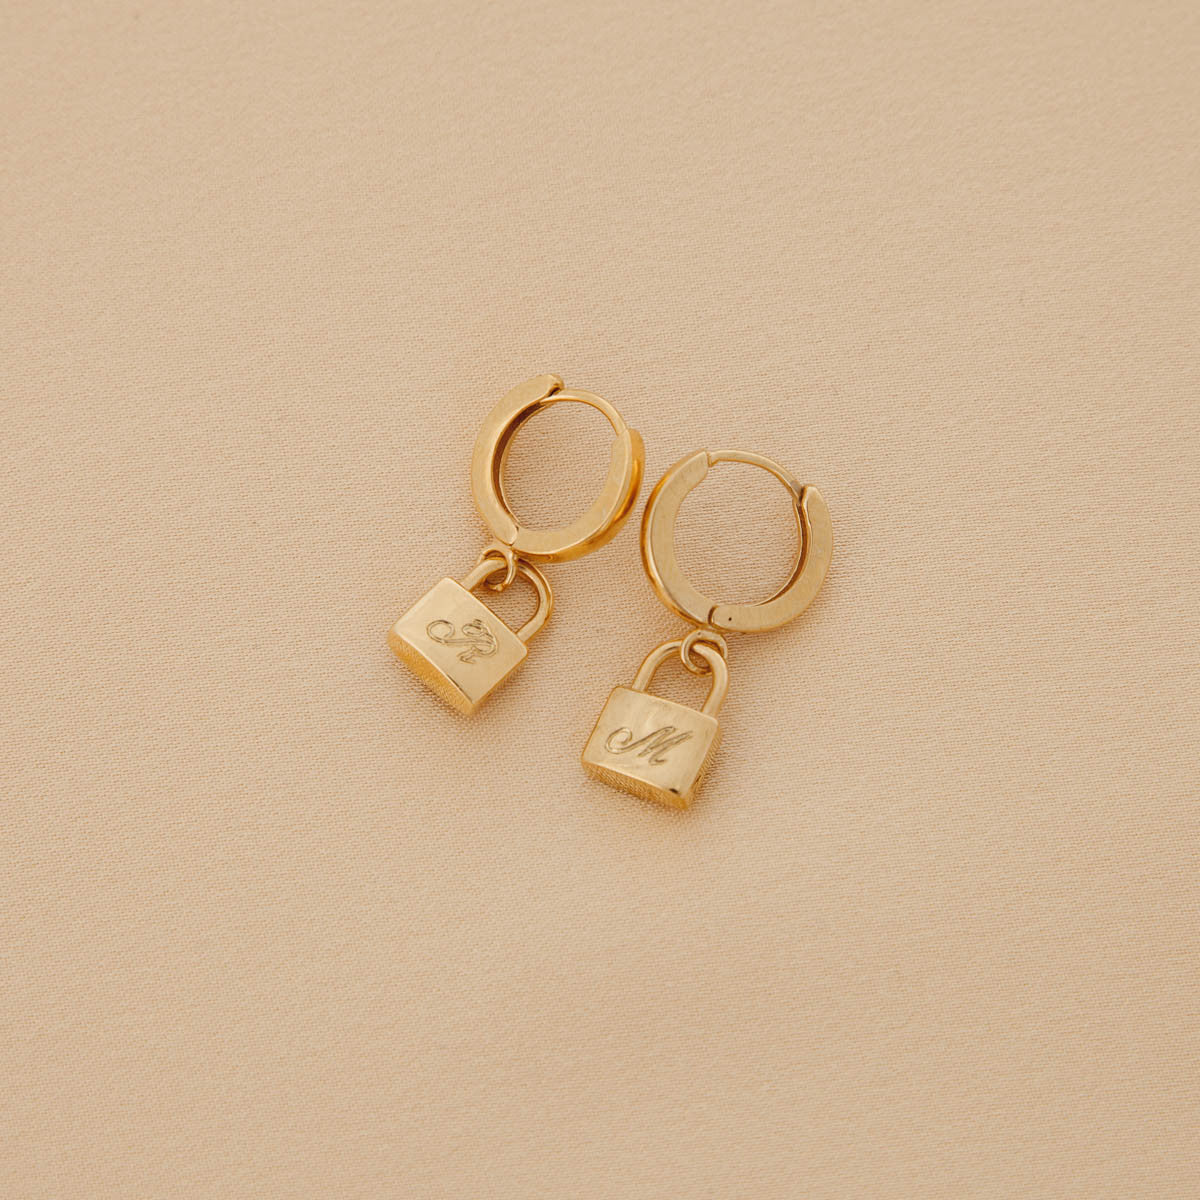 Are You Am I - Lira Earrings